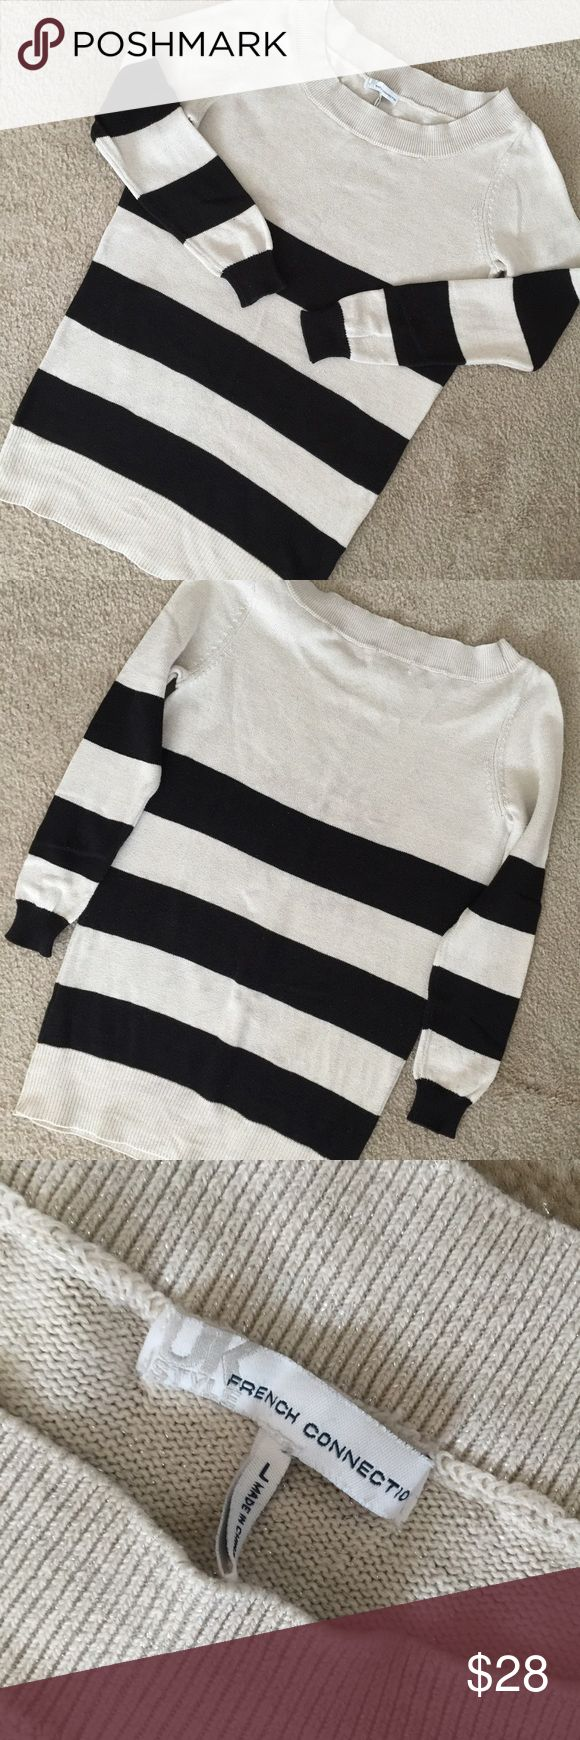 """French Connection Striped Tunic Sweater Size Large Pretty tunic sweater from French Connection! High quality knit, tan and black striped, boat-neck, tunic sweater. The tan part of the sweater has pretty silver flecks interwoven into the knit. Great condition-minor pilling under the arms. 22"""" from shoulder to hem; 19.5"""" from armpit to armpit. Sleeves are 26"""" long. Perfect with leggings and booties! French Connection Sweaters"""